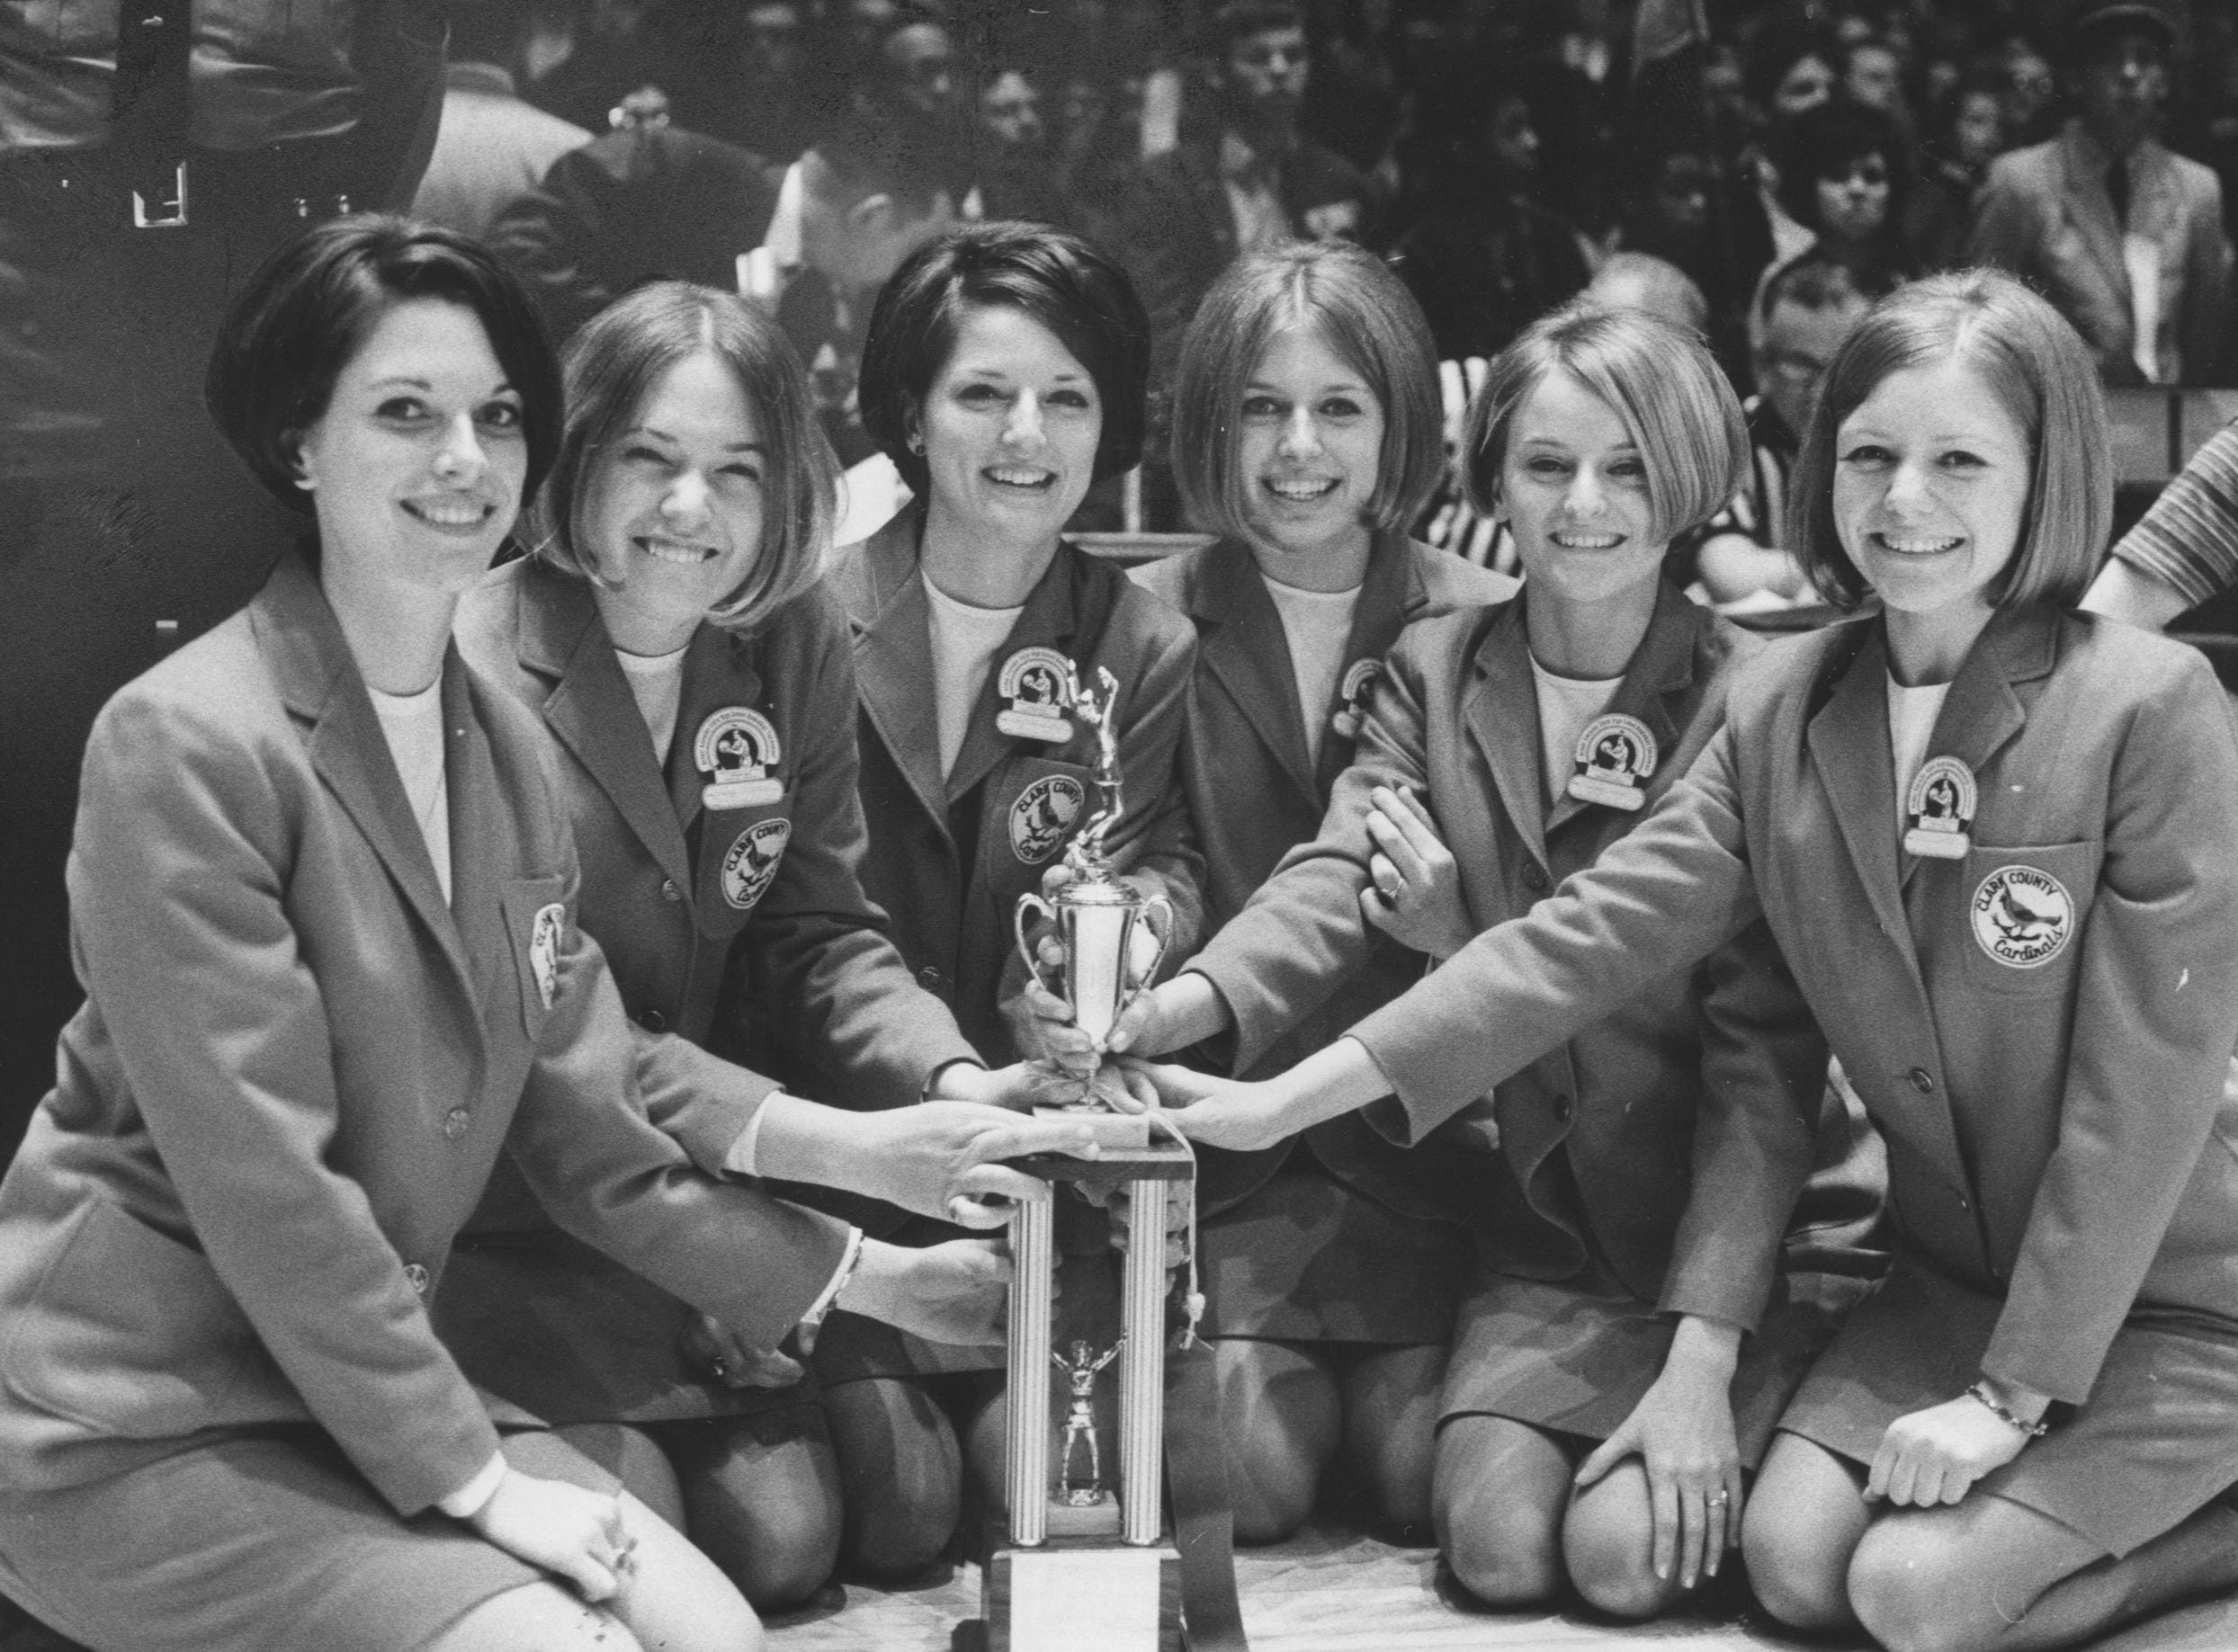 These Clark County girls have plenty to smile about after being judged the best cheerleaders in the State High School Basketball Tournament at Freedom hall. Mar. 31, 1969